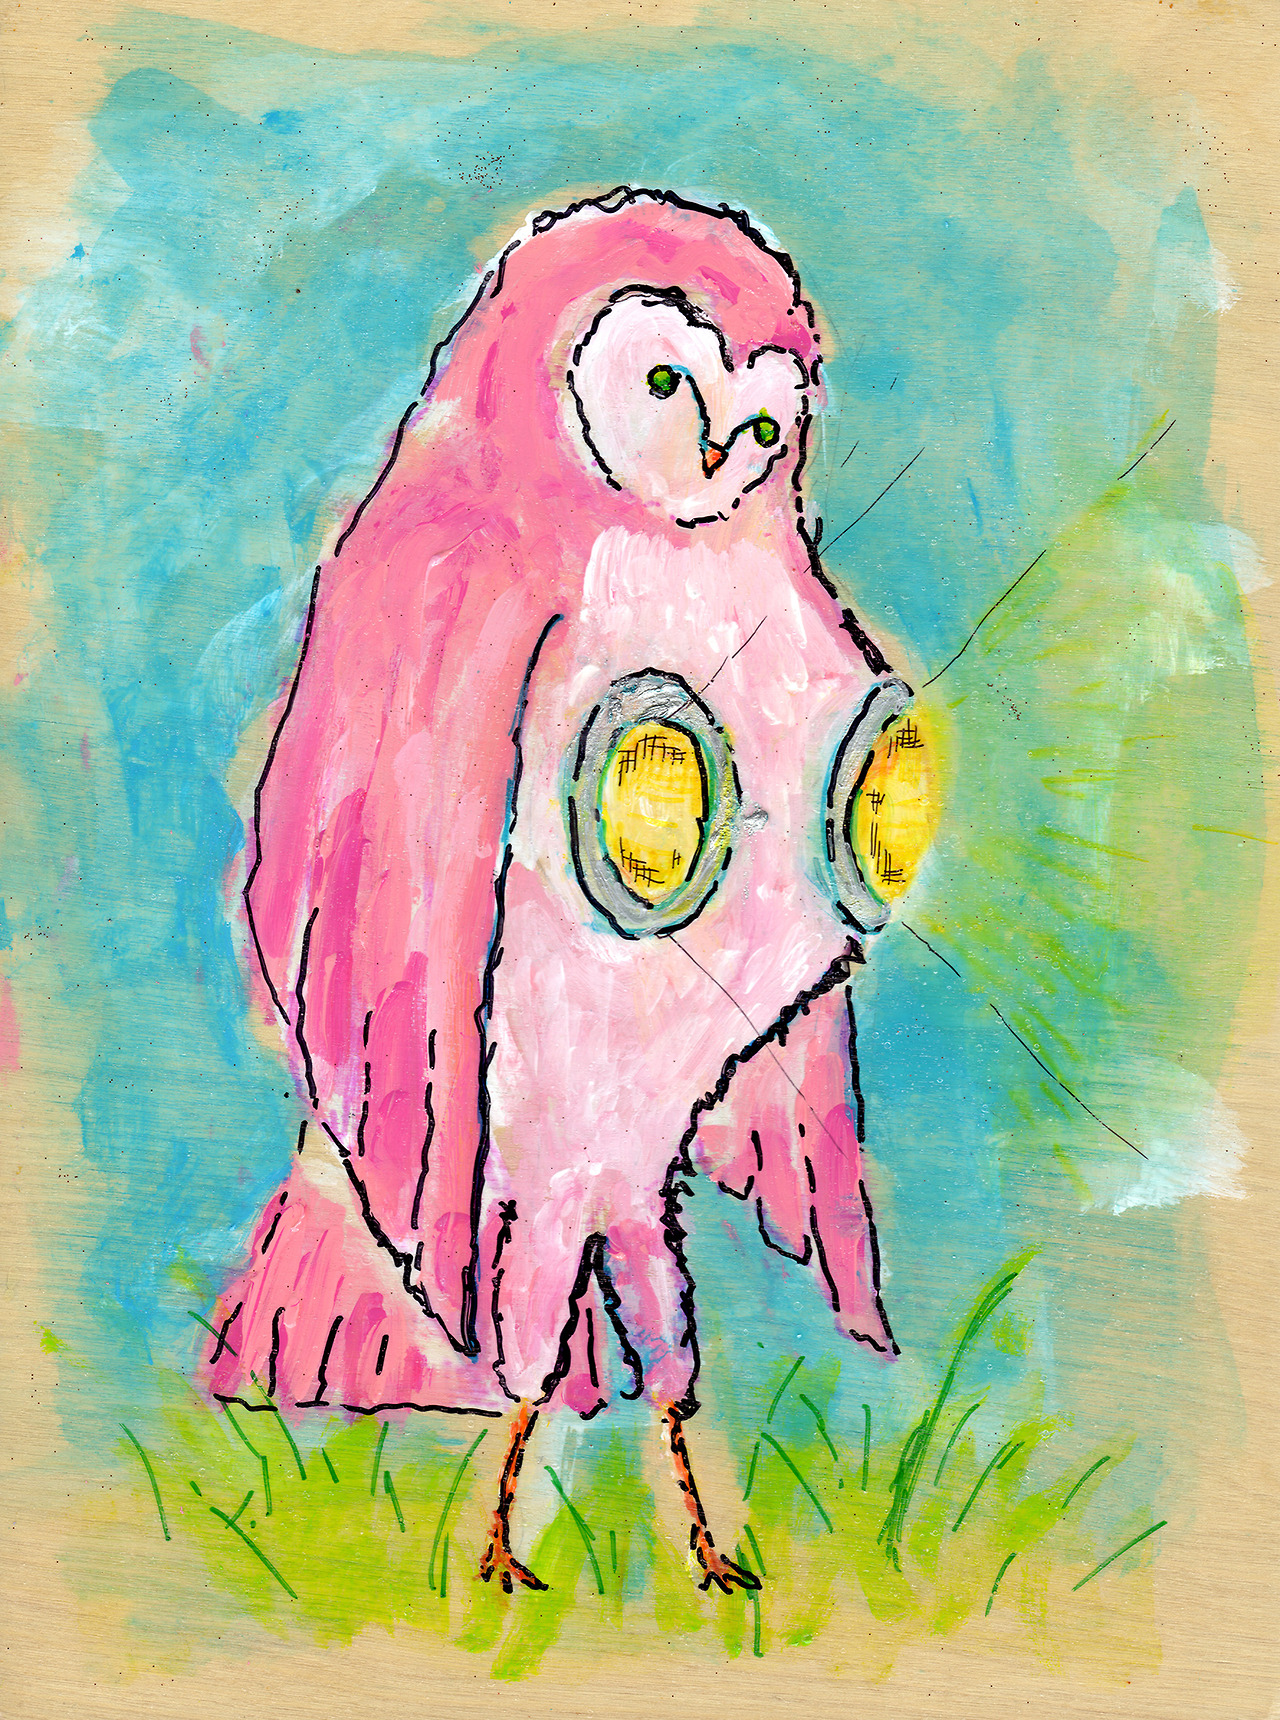 8/27/13 -  Headlights on a Pink Hooter .   Well it's Tuesday, after all. At least I didn't strictly paint boobs this time.    Buy it here:  http://taylorwinder.bigcartel.com    Prints of it here:  http://society6.com/taylorwinder